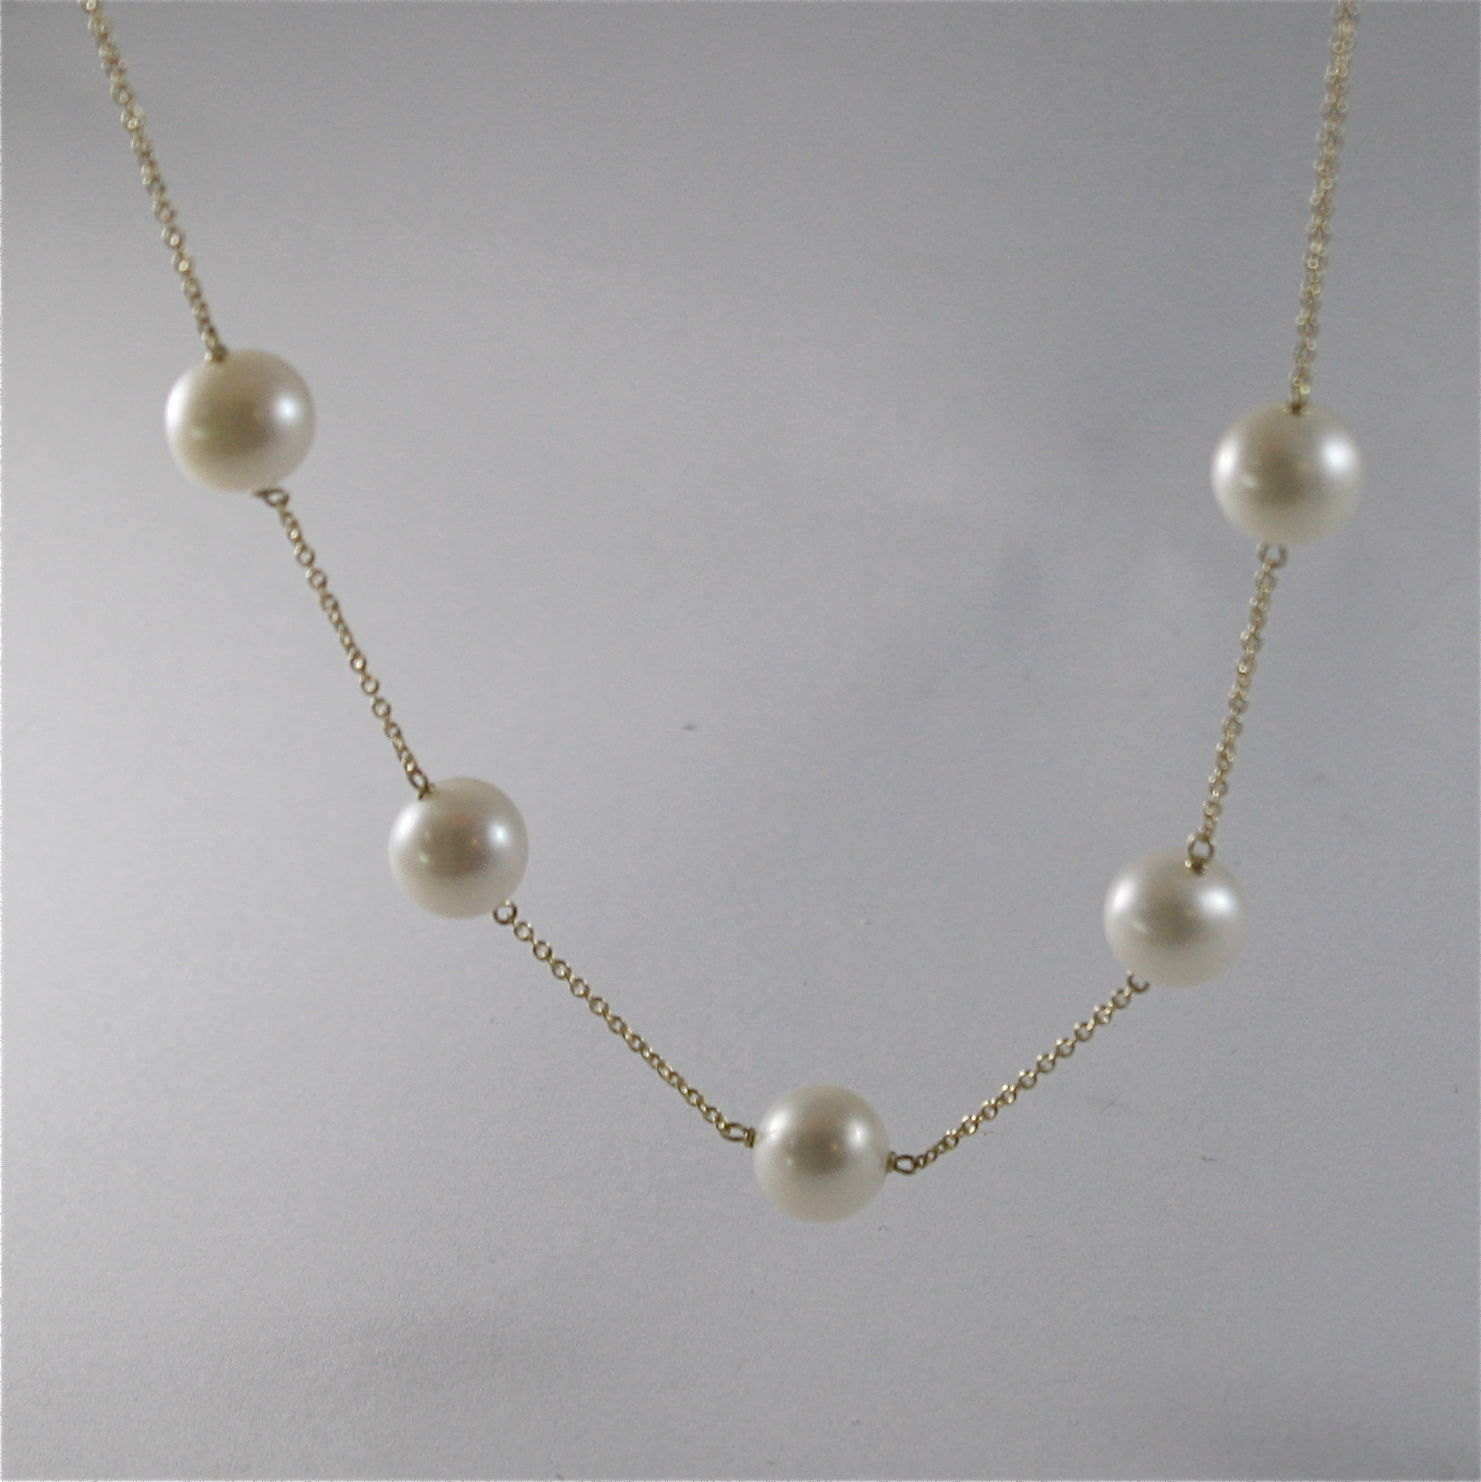 18K YELLO GOLD NECKLACE WITH ROUND WHITE FRESHWATER PEARLS MADE IN ITALY